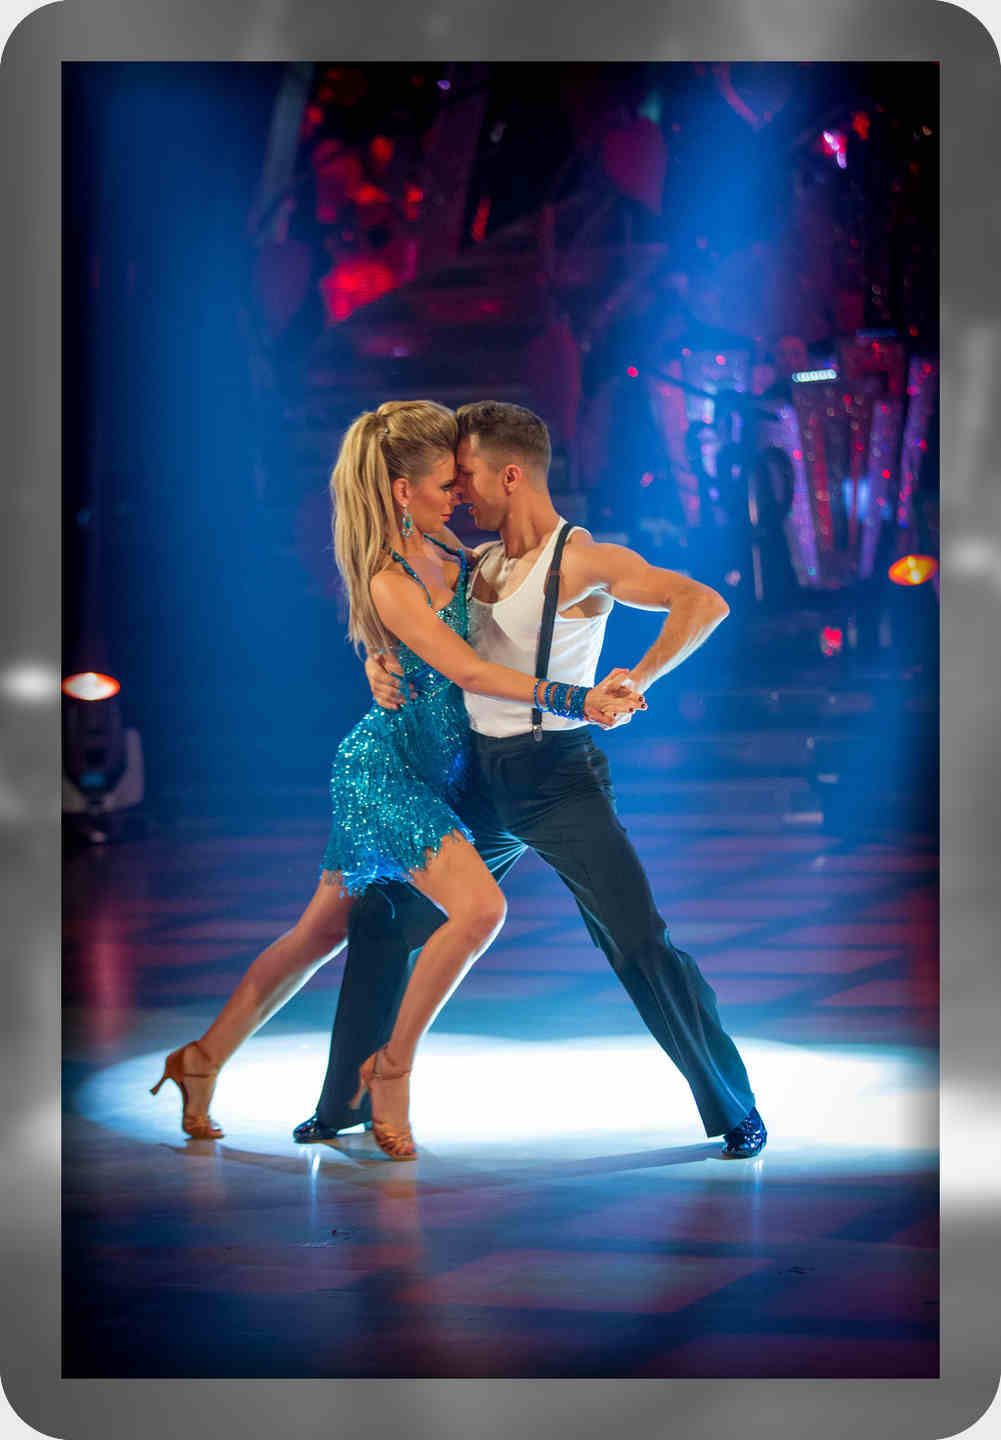 مسابقه رقص strictly come dancing فصل 12